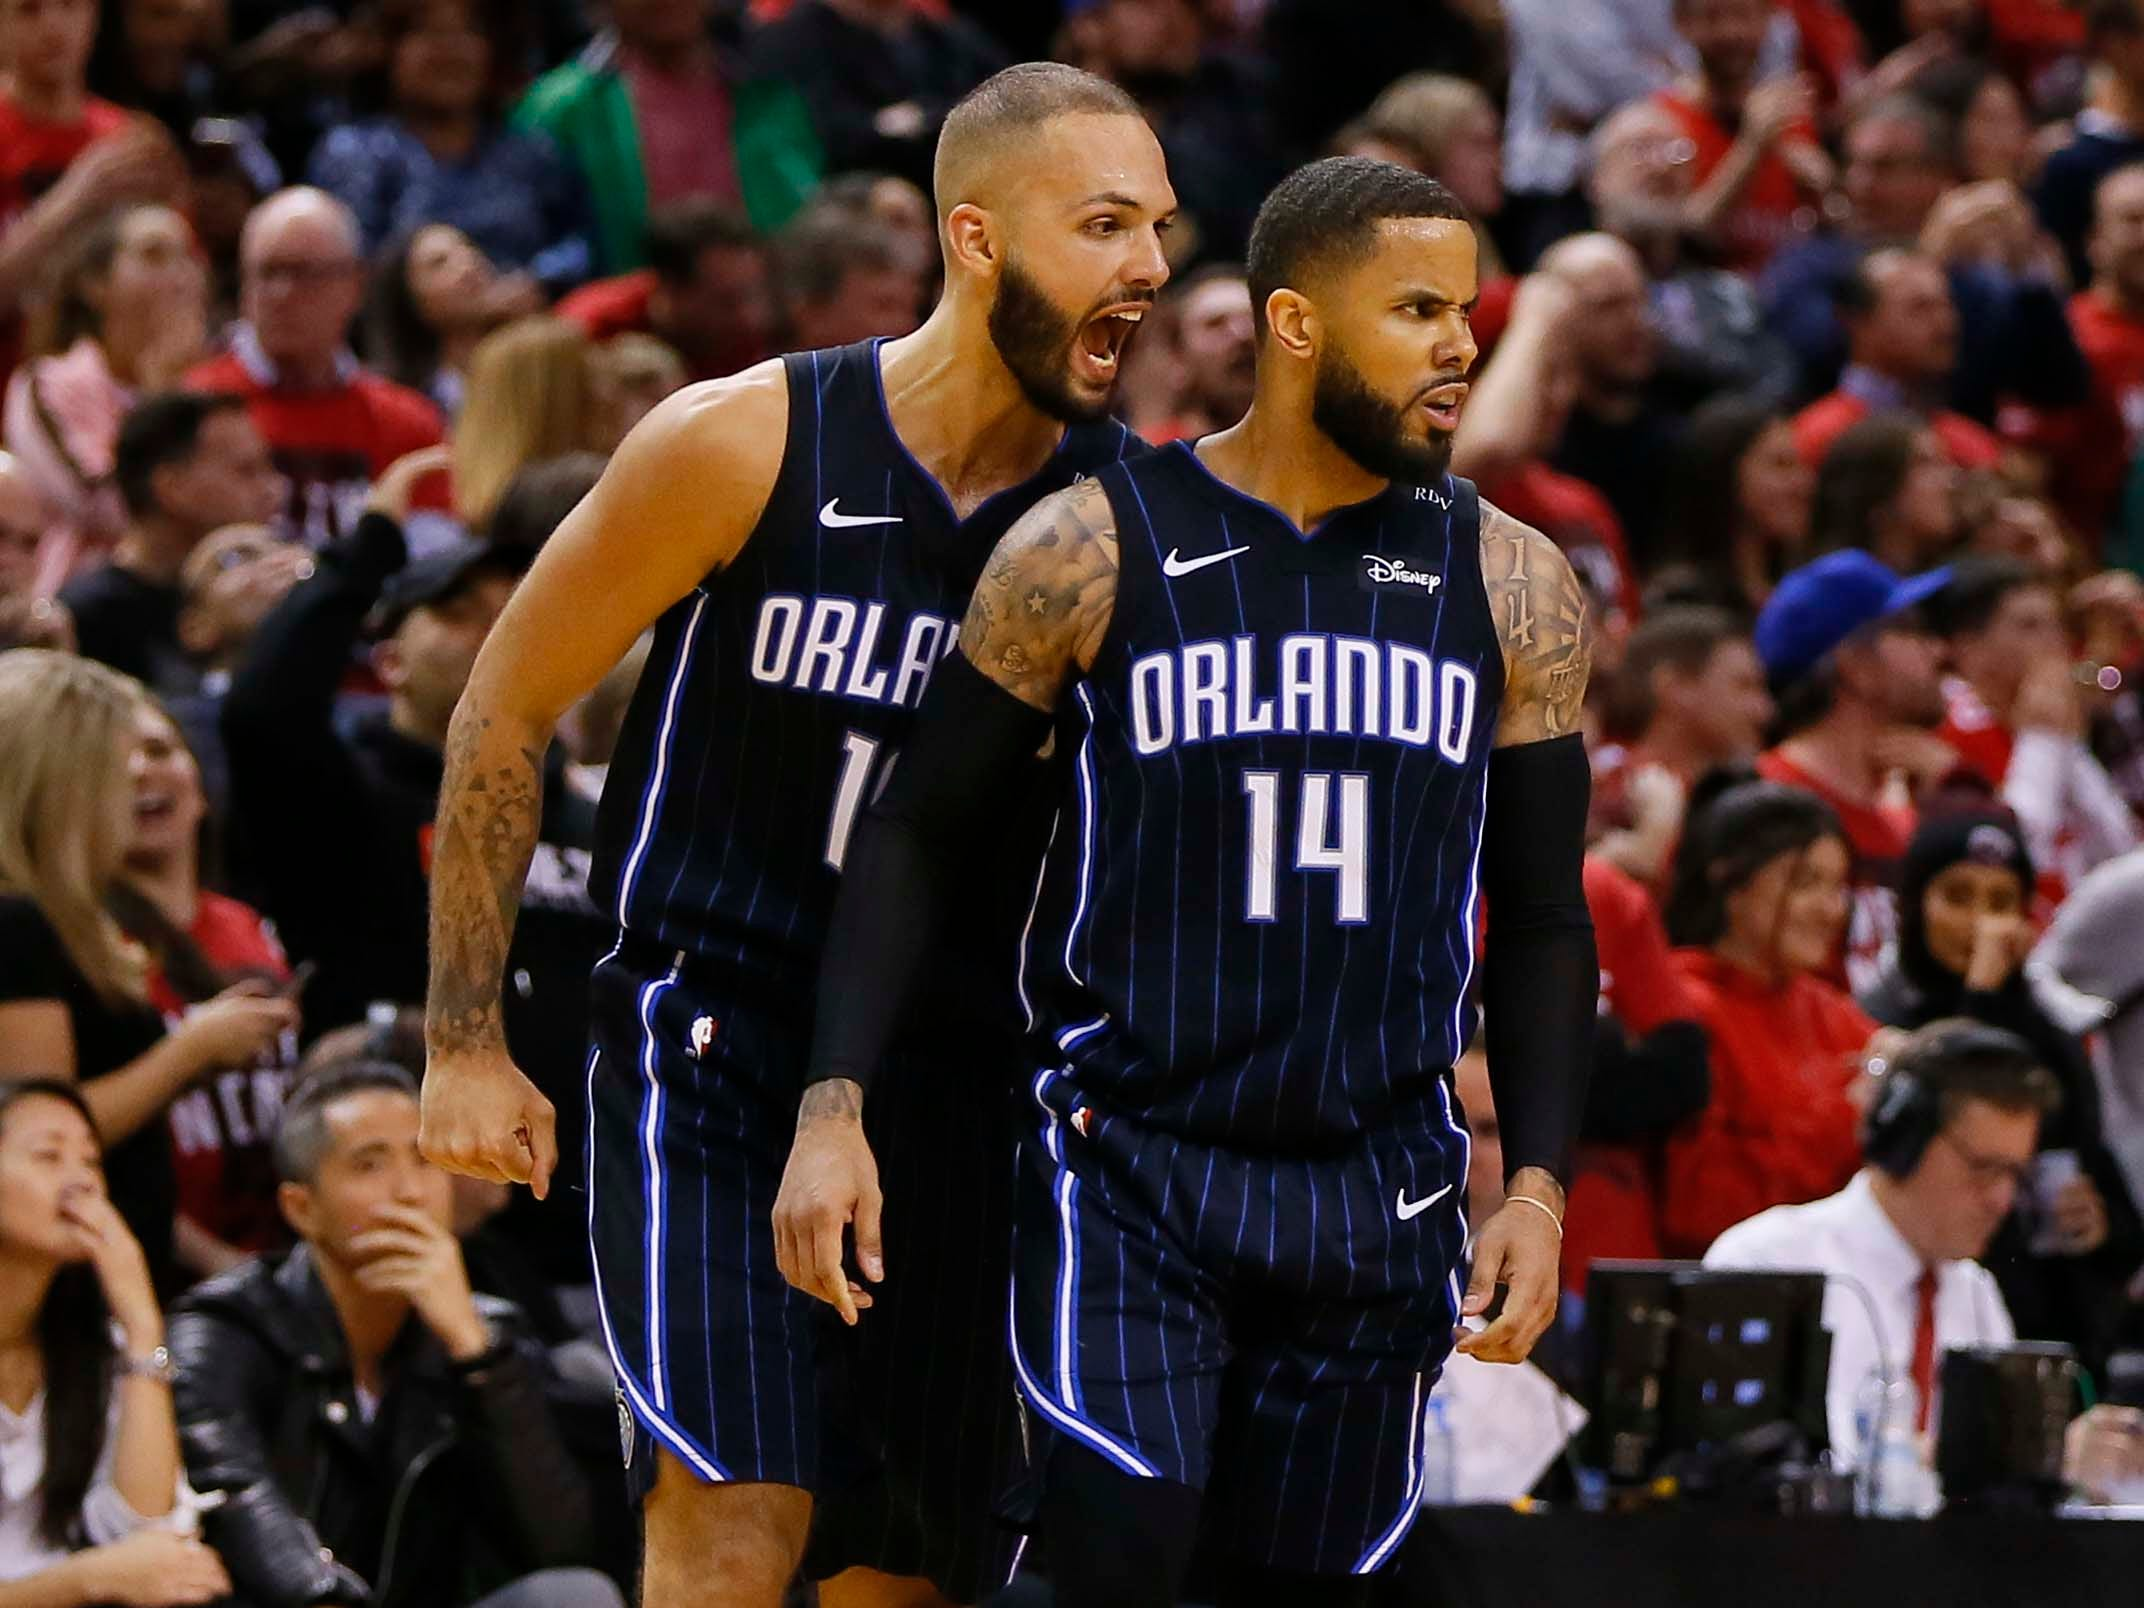 April 13: Magic guard Evan Fournier reacts to the winning basket by guard D.J. Augustin in Game 1 against the Raptors.